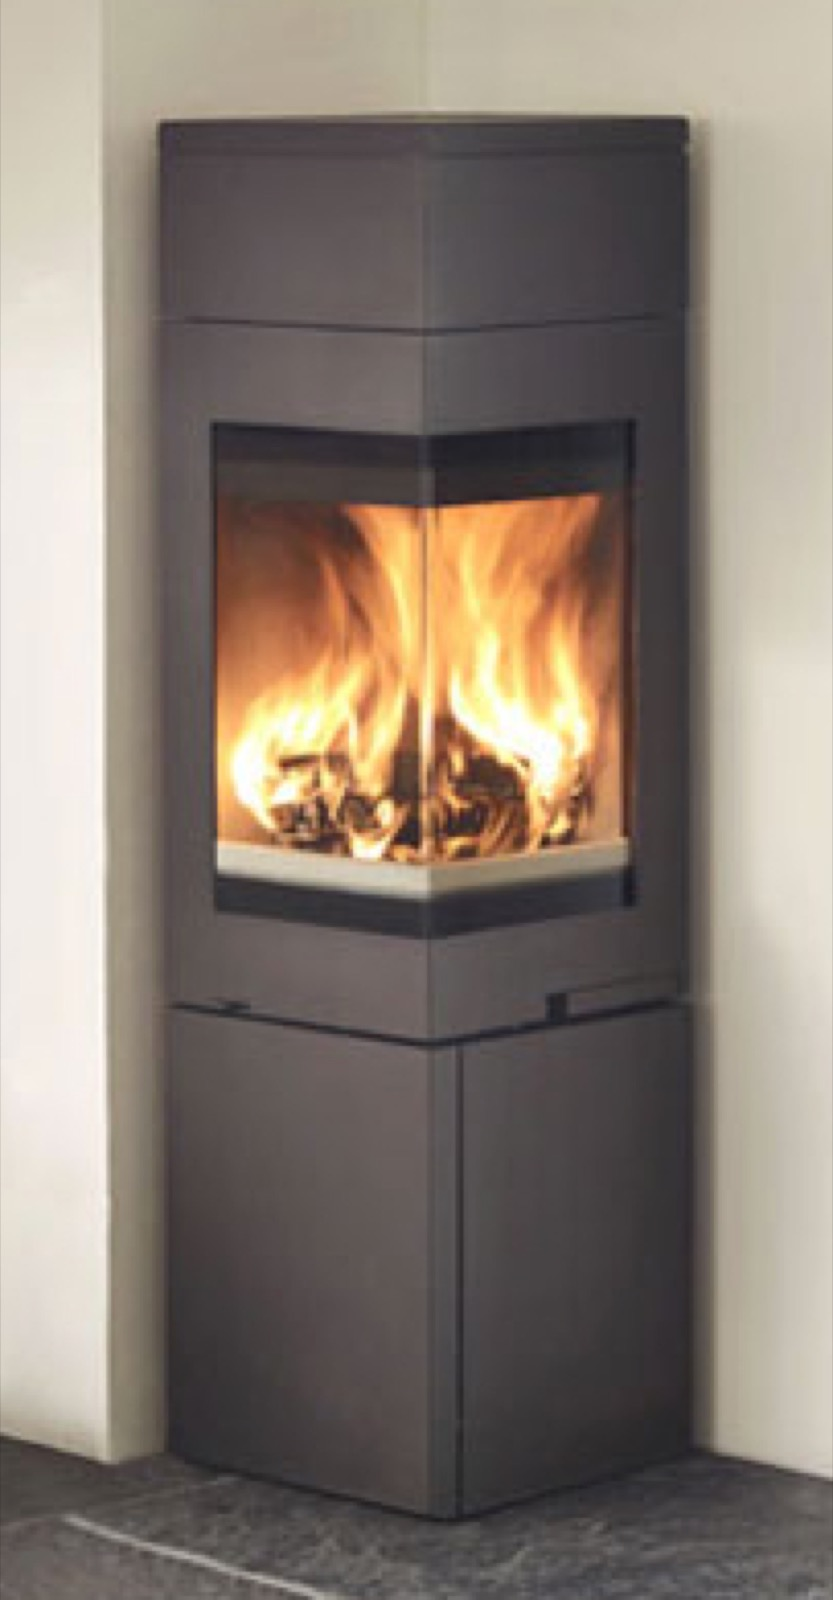 Nordpeis Quadro 2t Wood Burning Stove Corner Model